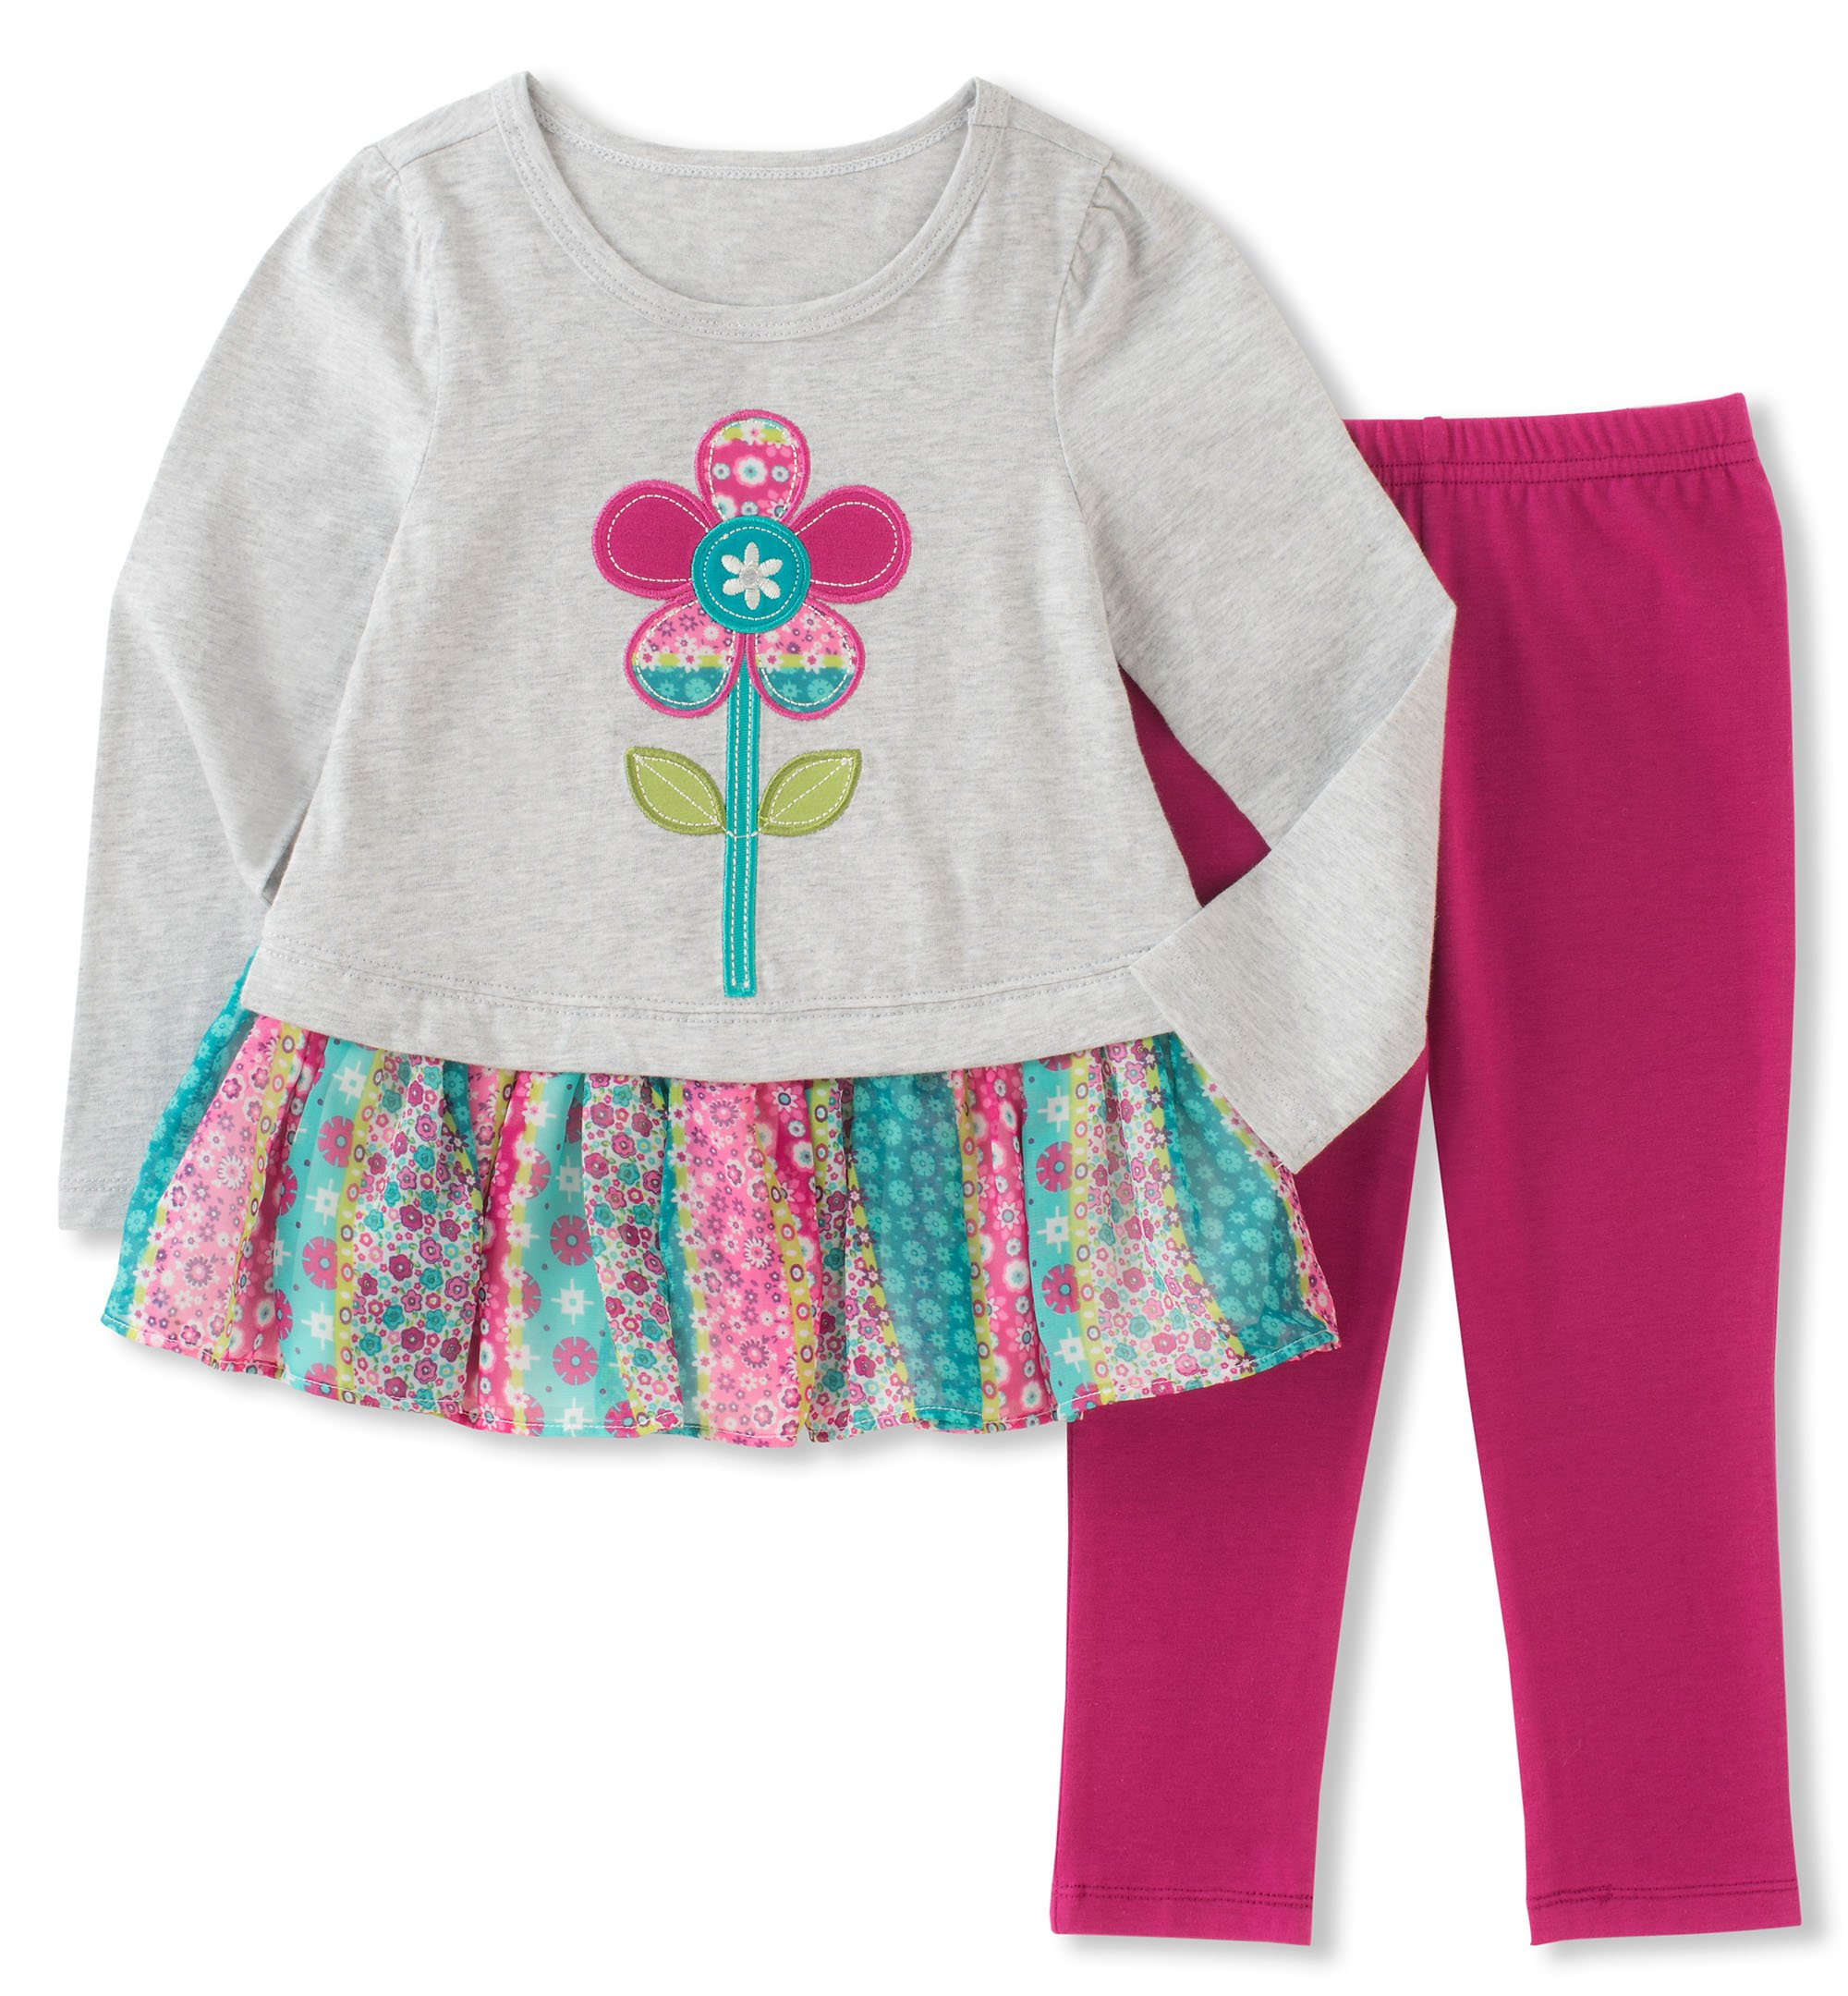 Kids Headquarters Little Girls' Tunic Legging Set, Grey/Multi/Berry, 5